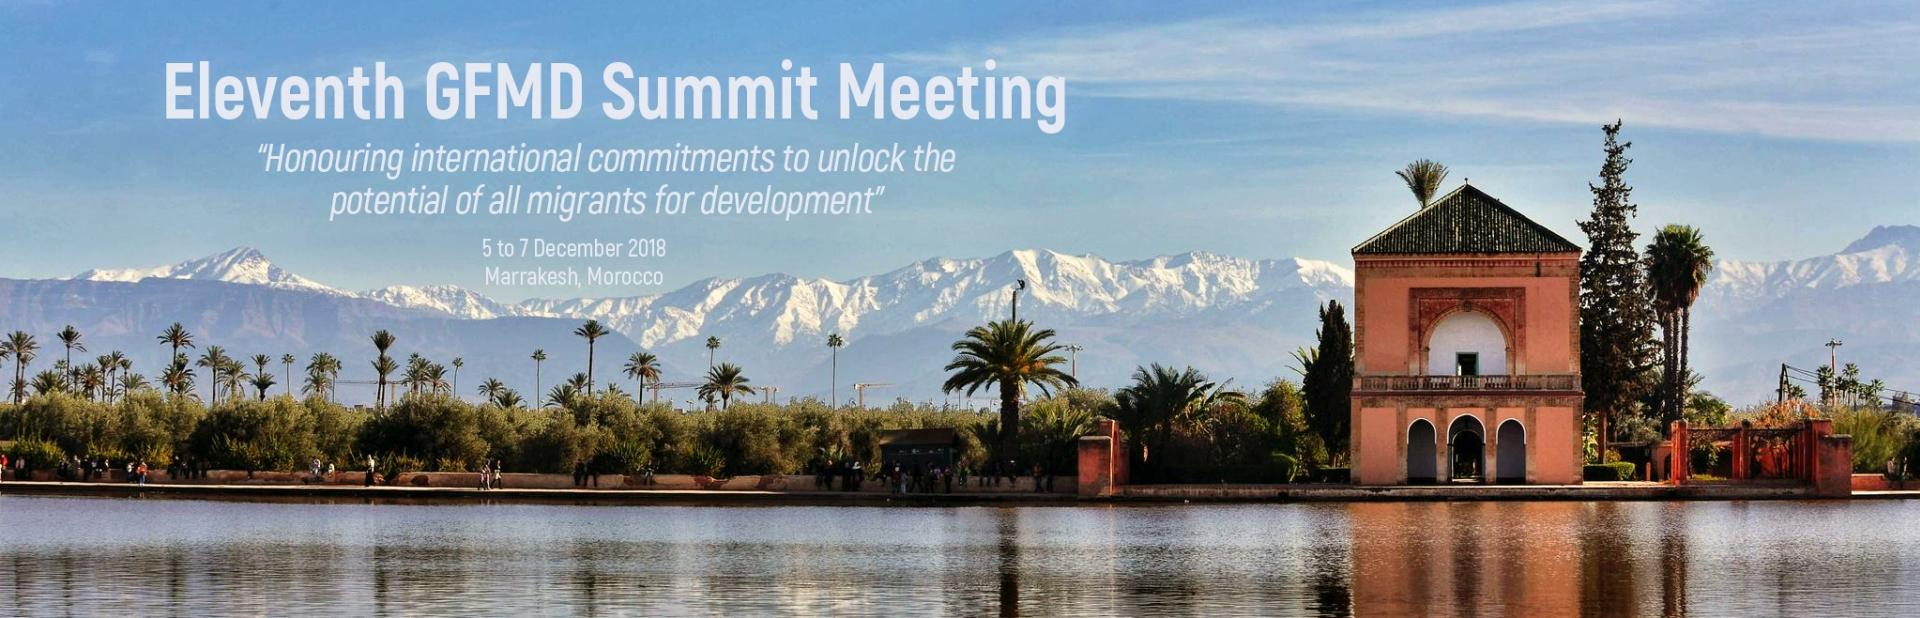 Homepage banner - Summit 2018